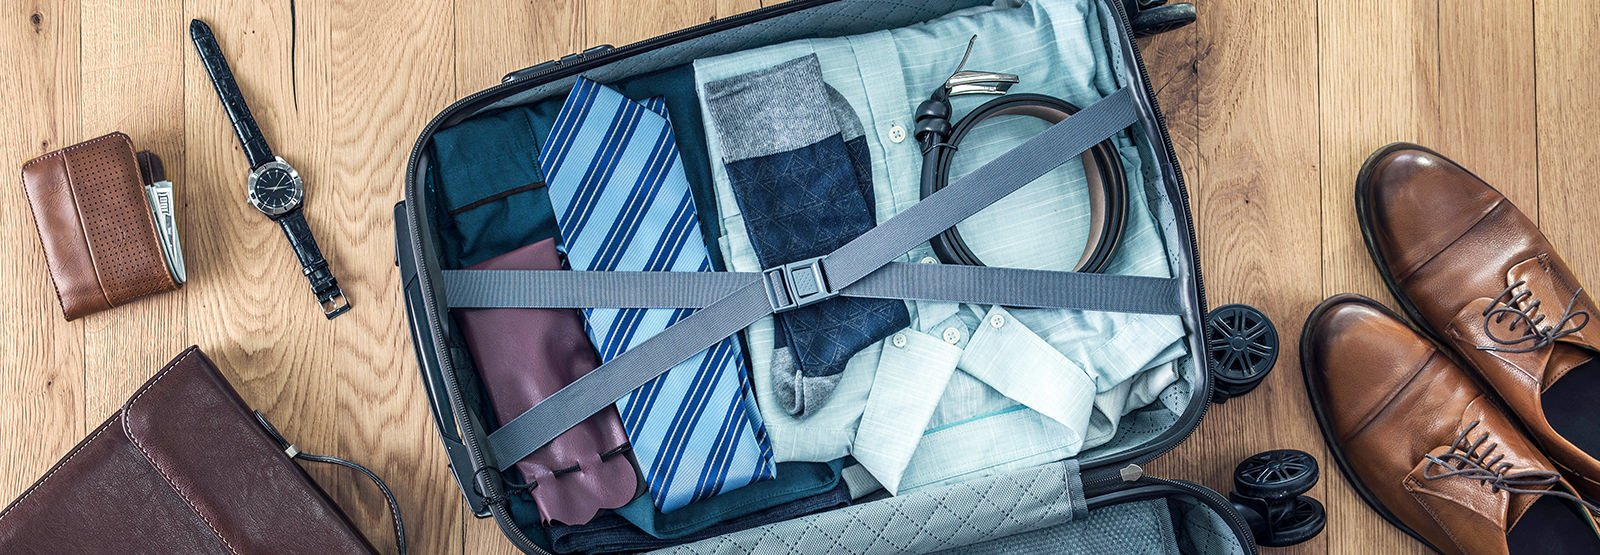 a neatly packed travel bag with business attire